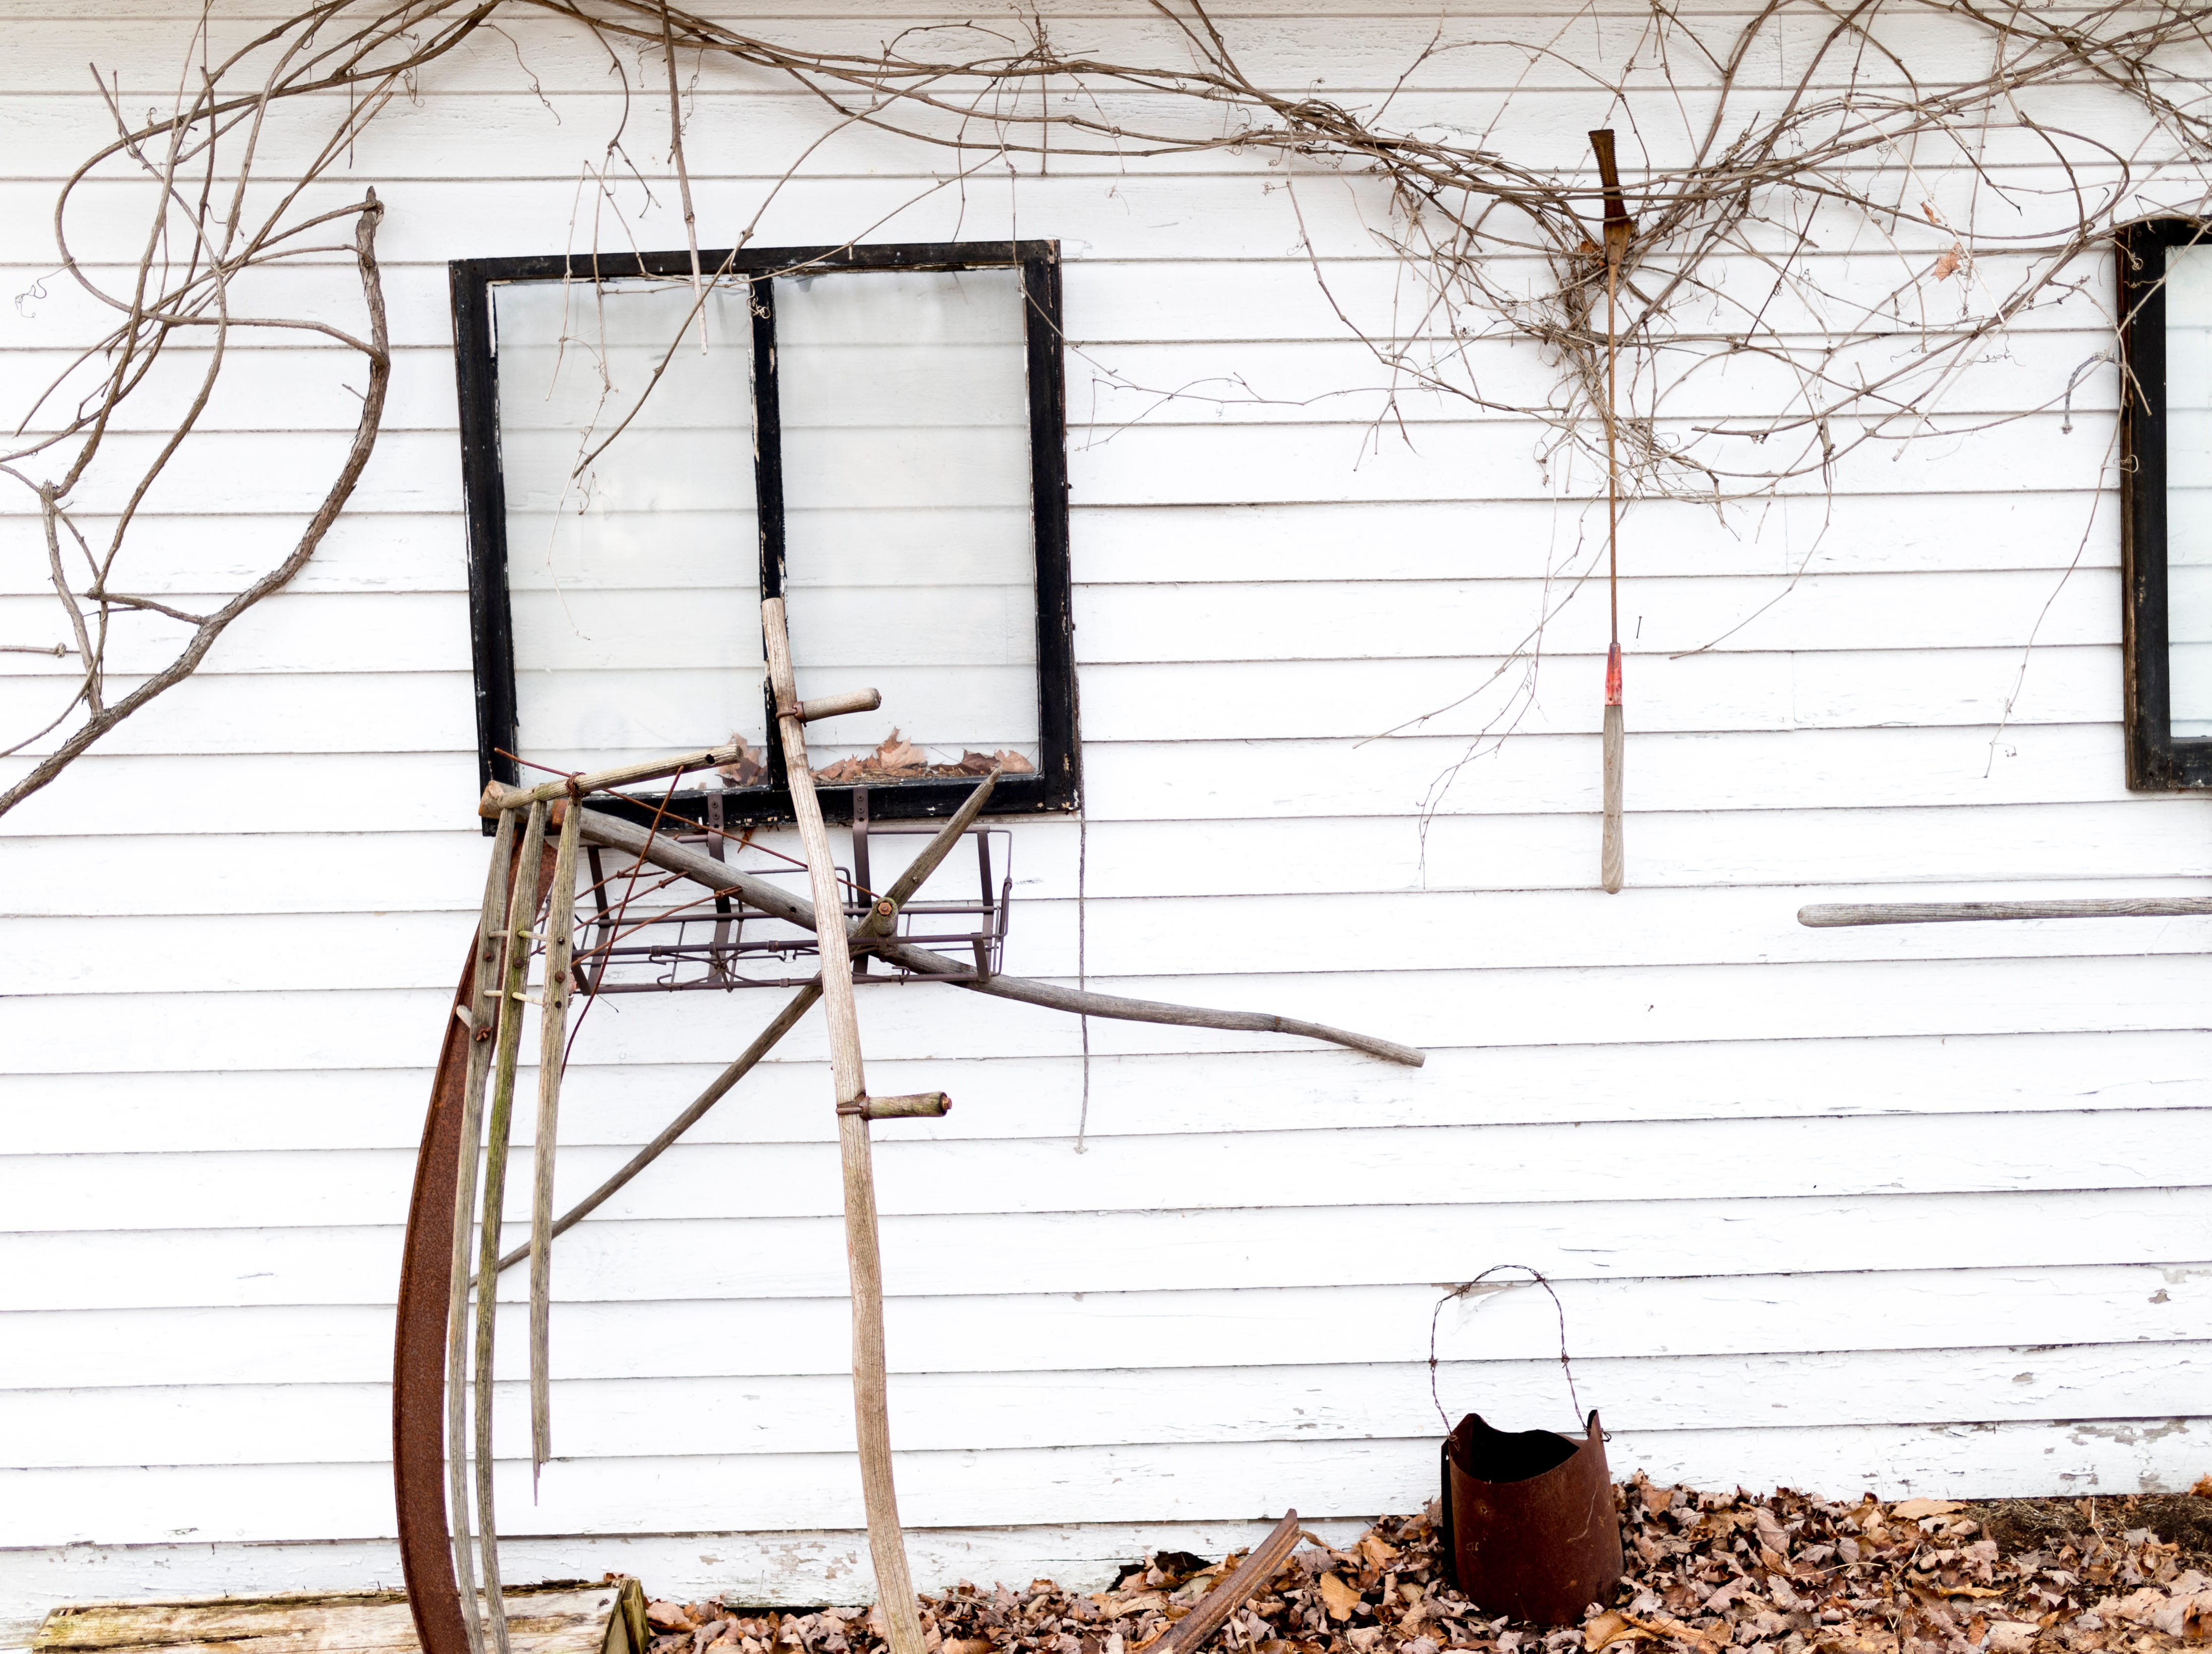 Rustic items decorate the parking lot at The Front Porch Restaurant in Powell, Tennessee on Saturday, December 29, 2018. For five years, owner Bart Elkins has worked to revive that experience of the front porch being used as the focus for family and friends.